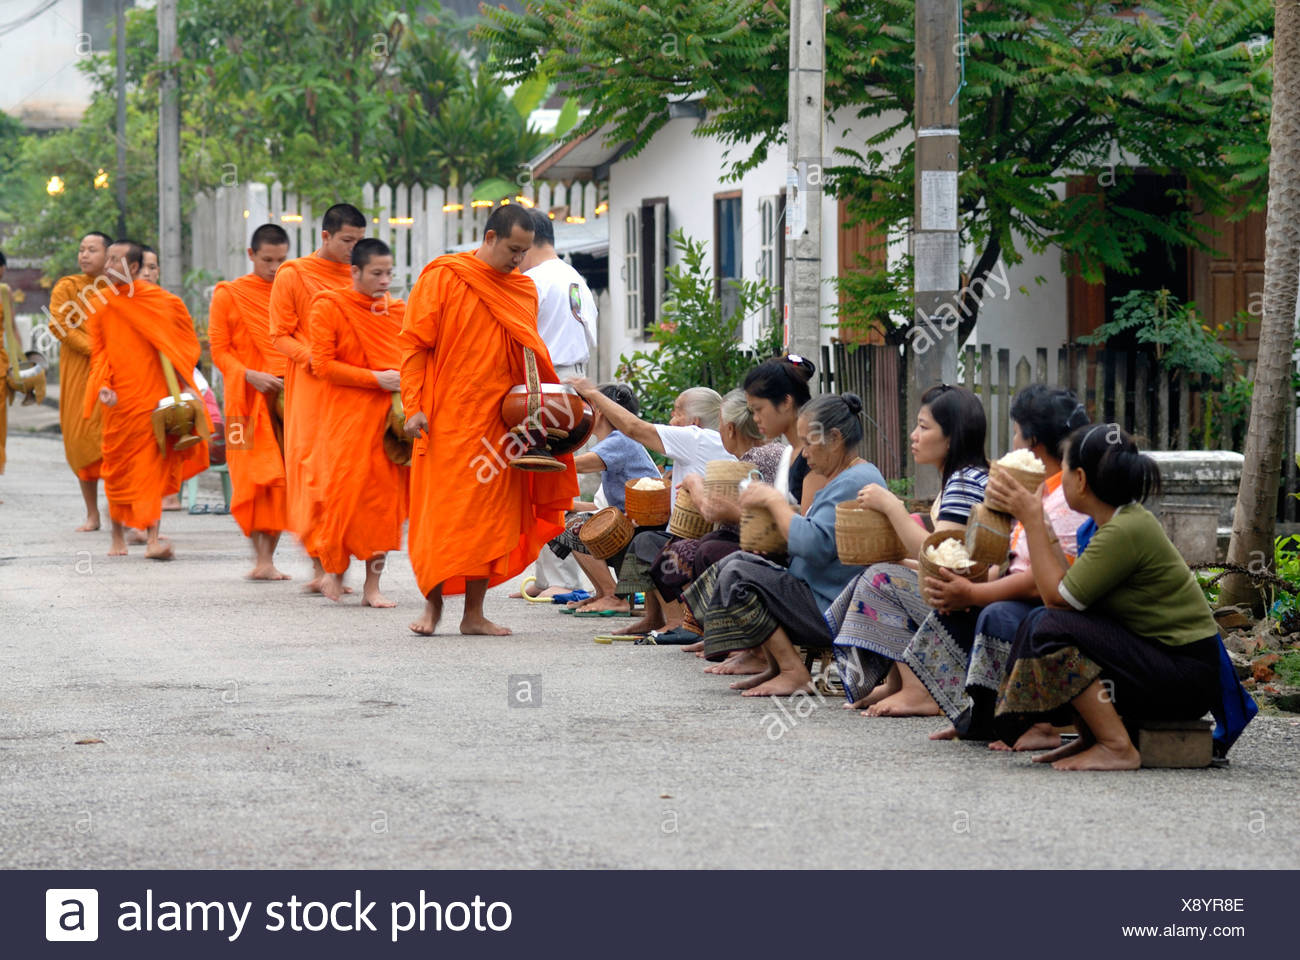 Morning alms collection, Thakbat of the monks and novices in the monasteries of Luang Prabang, men and women distributing food  - Stock Image